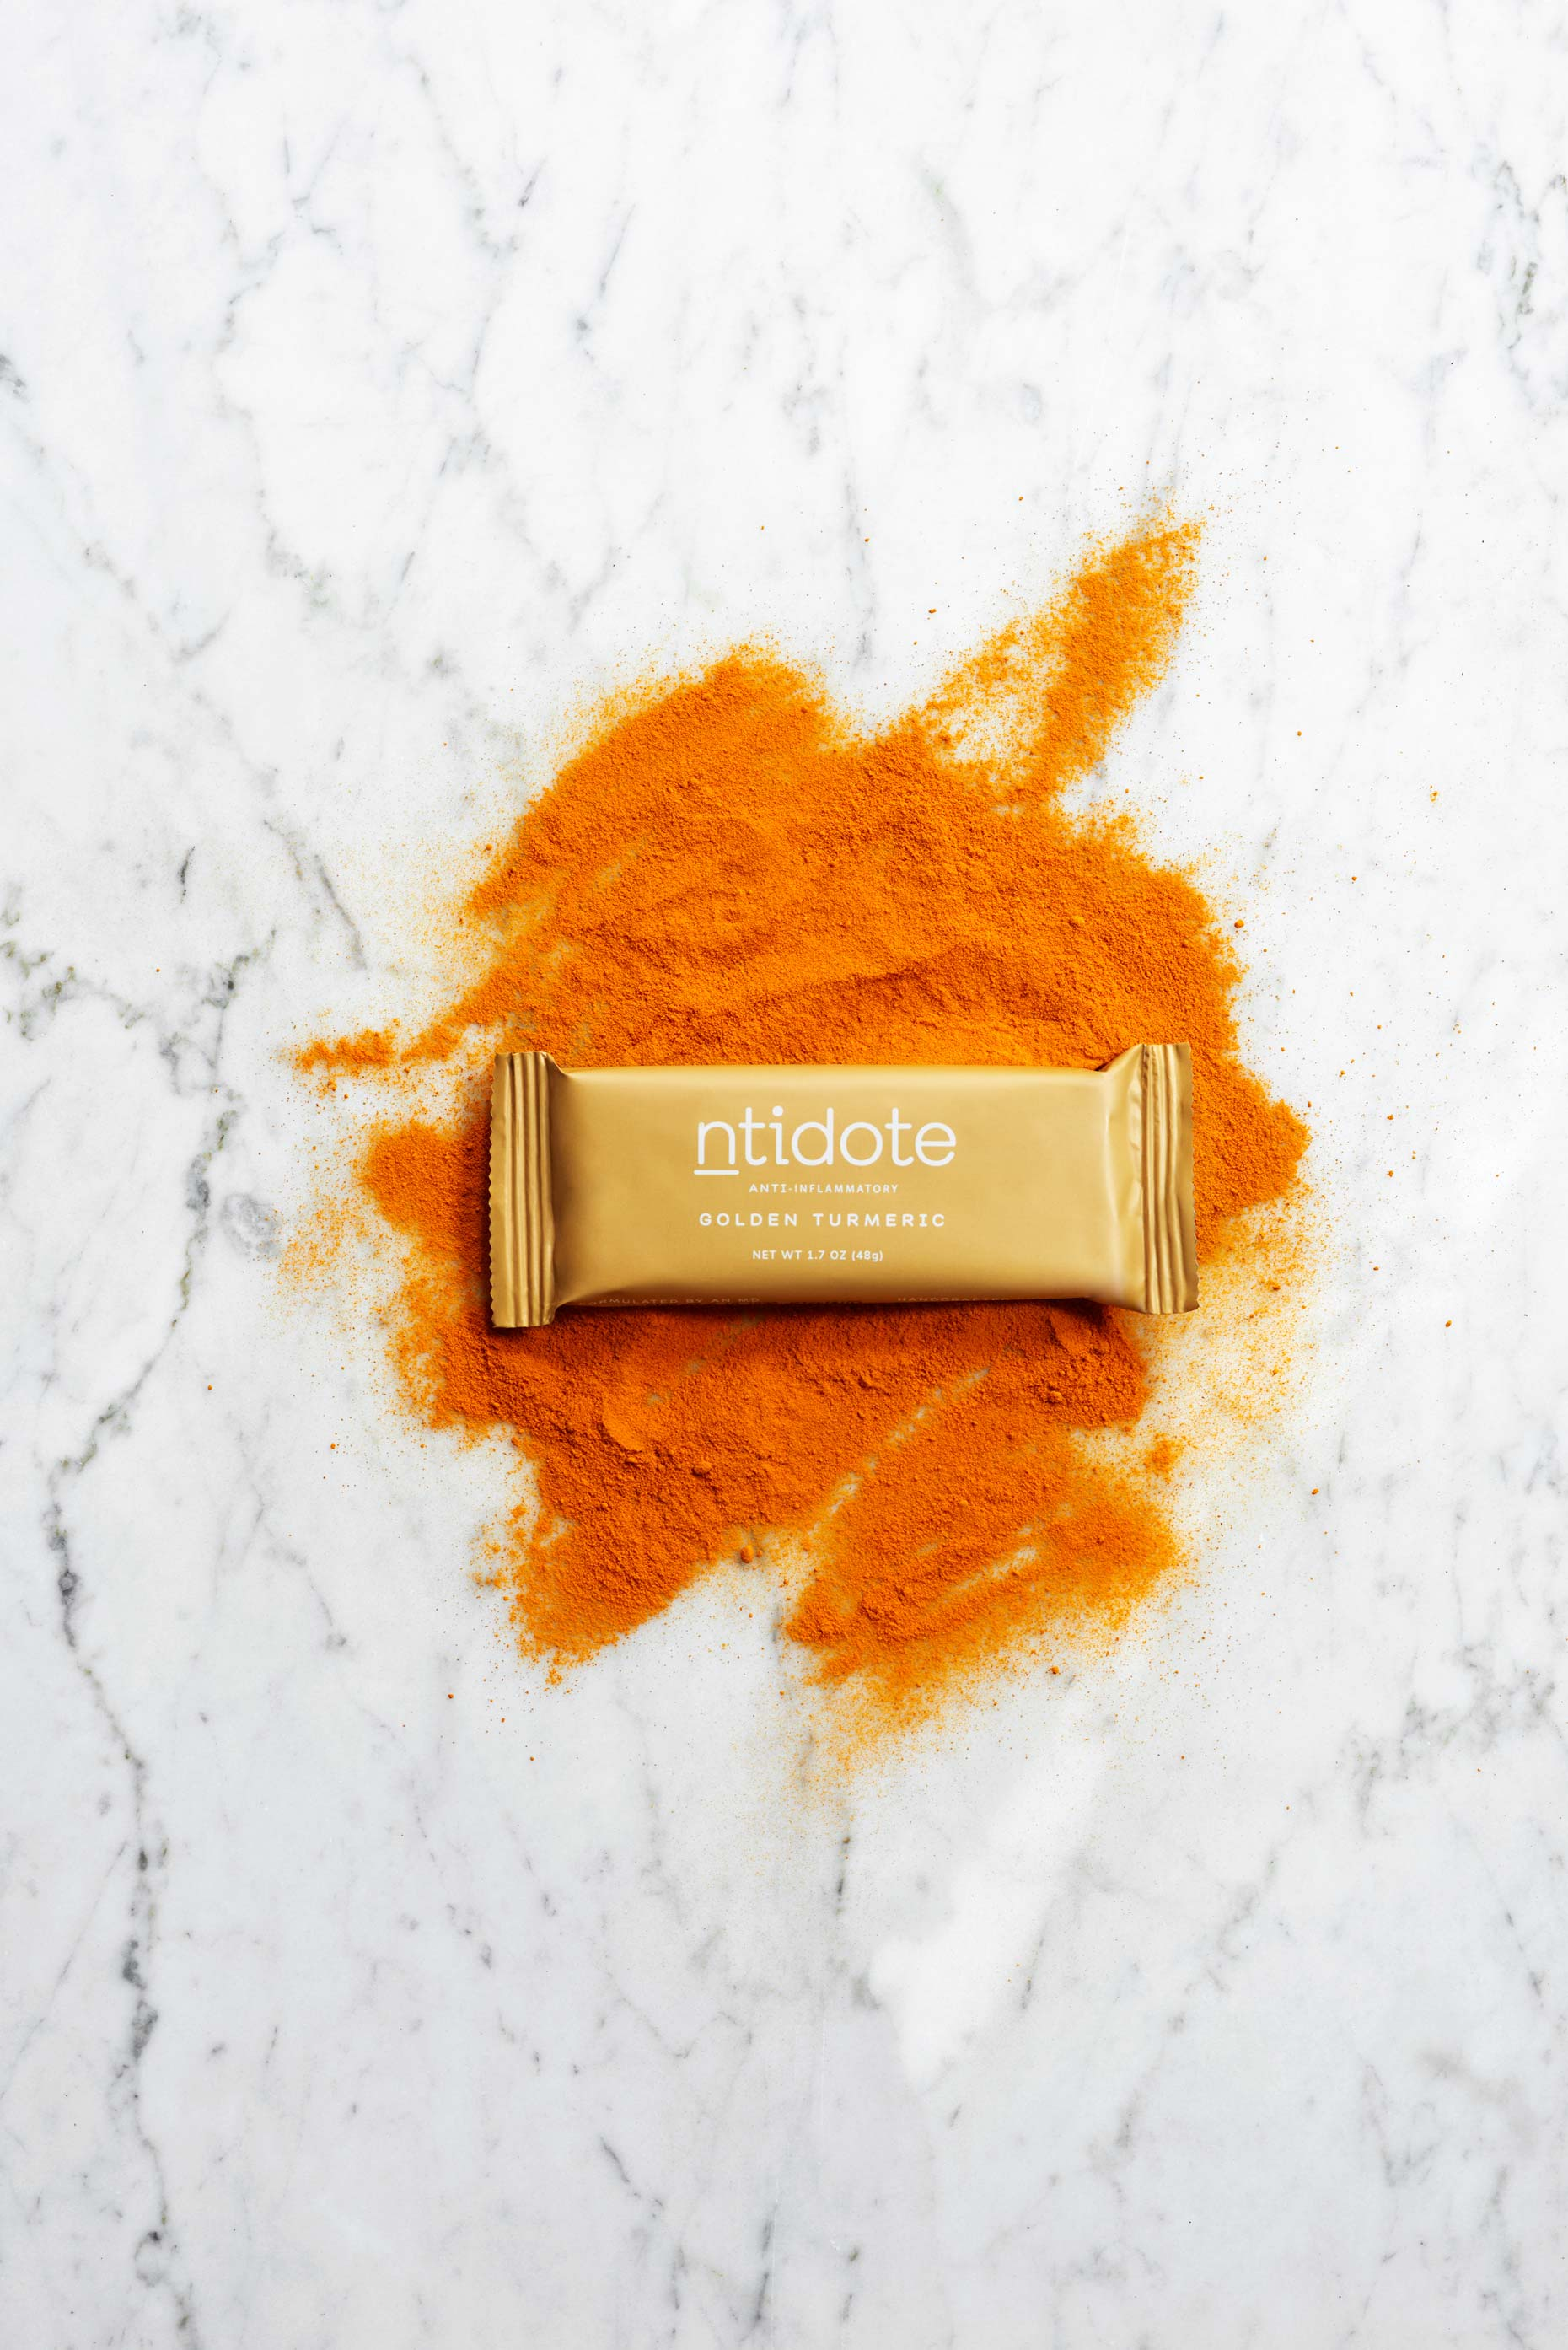 Ntidote Energy Bar photographed by Food Photographer Adrian Mueller New York